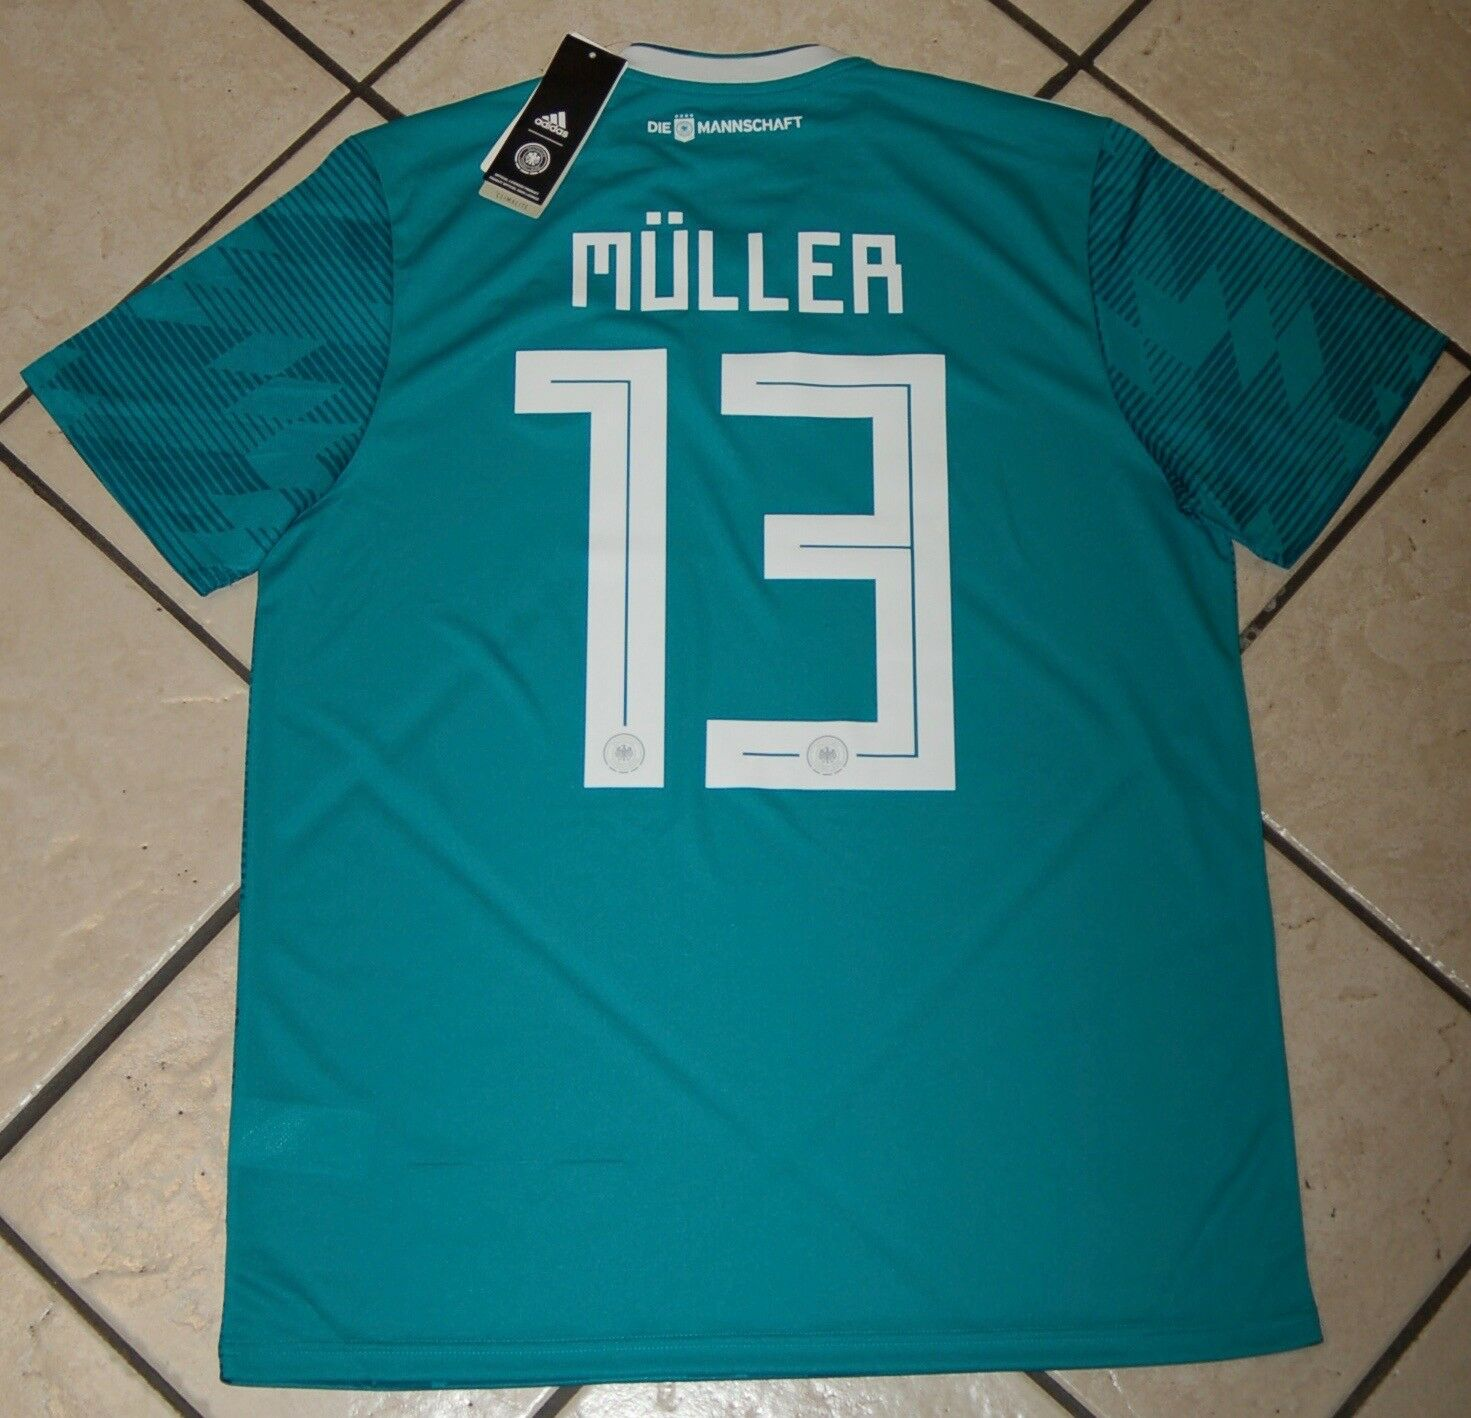 d1733f2eb60 Adidas Men s MULLER Germany Away Soccer Jersey